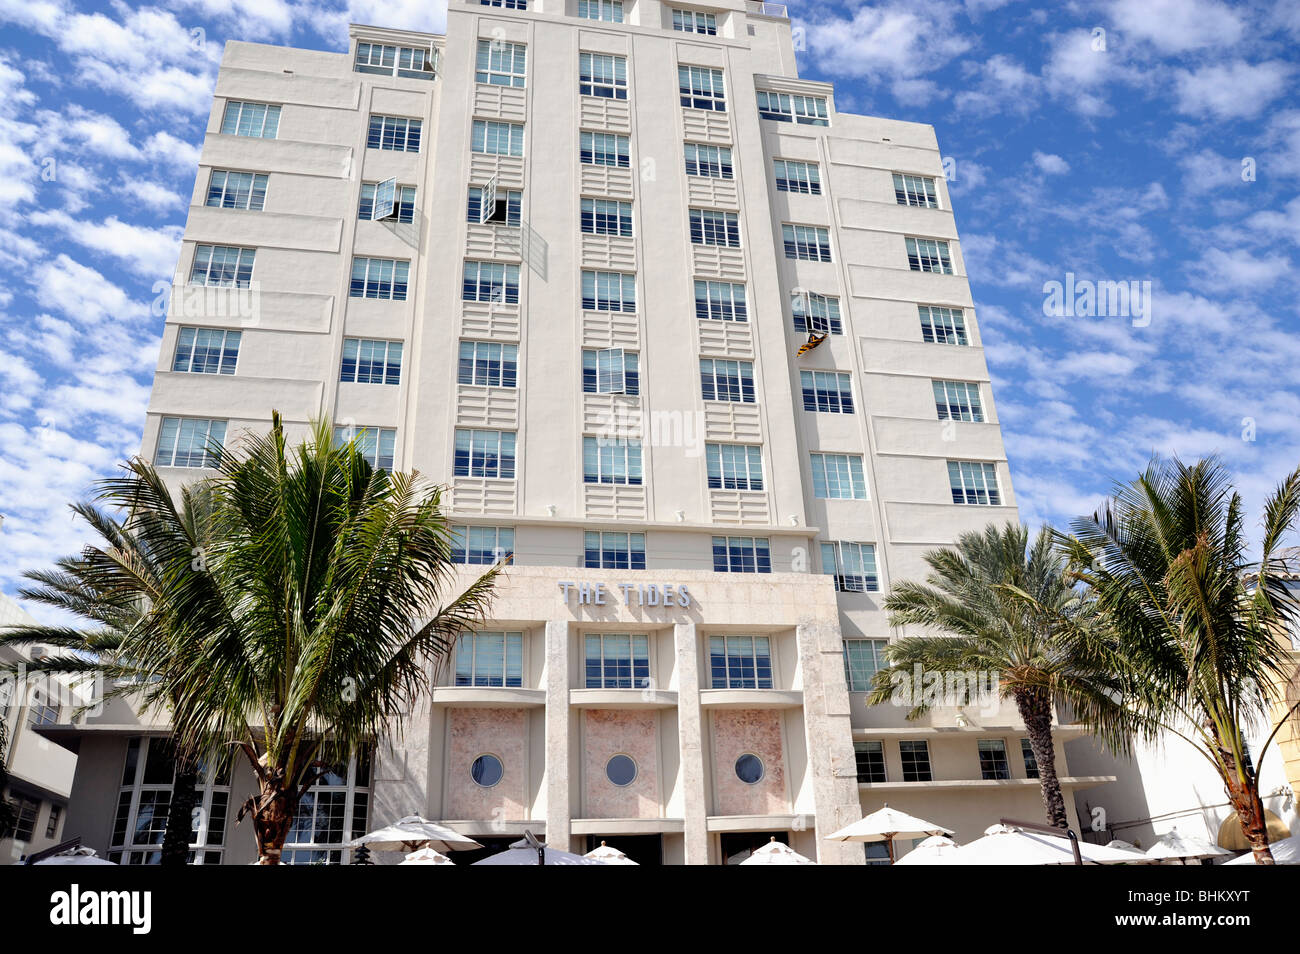 Detail of The Tides Hotel, Art Deco District, South Beach, Miami Beach, FL, USA - Stock Image